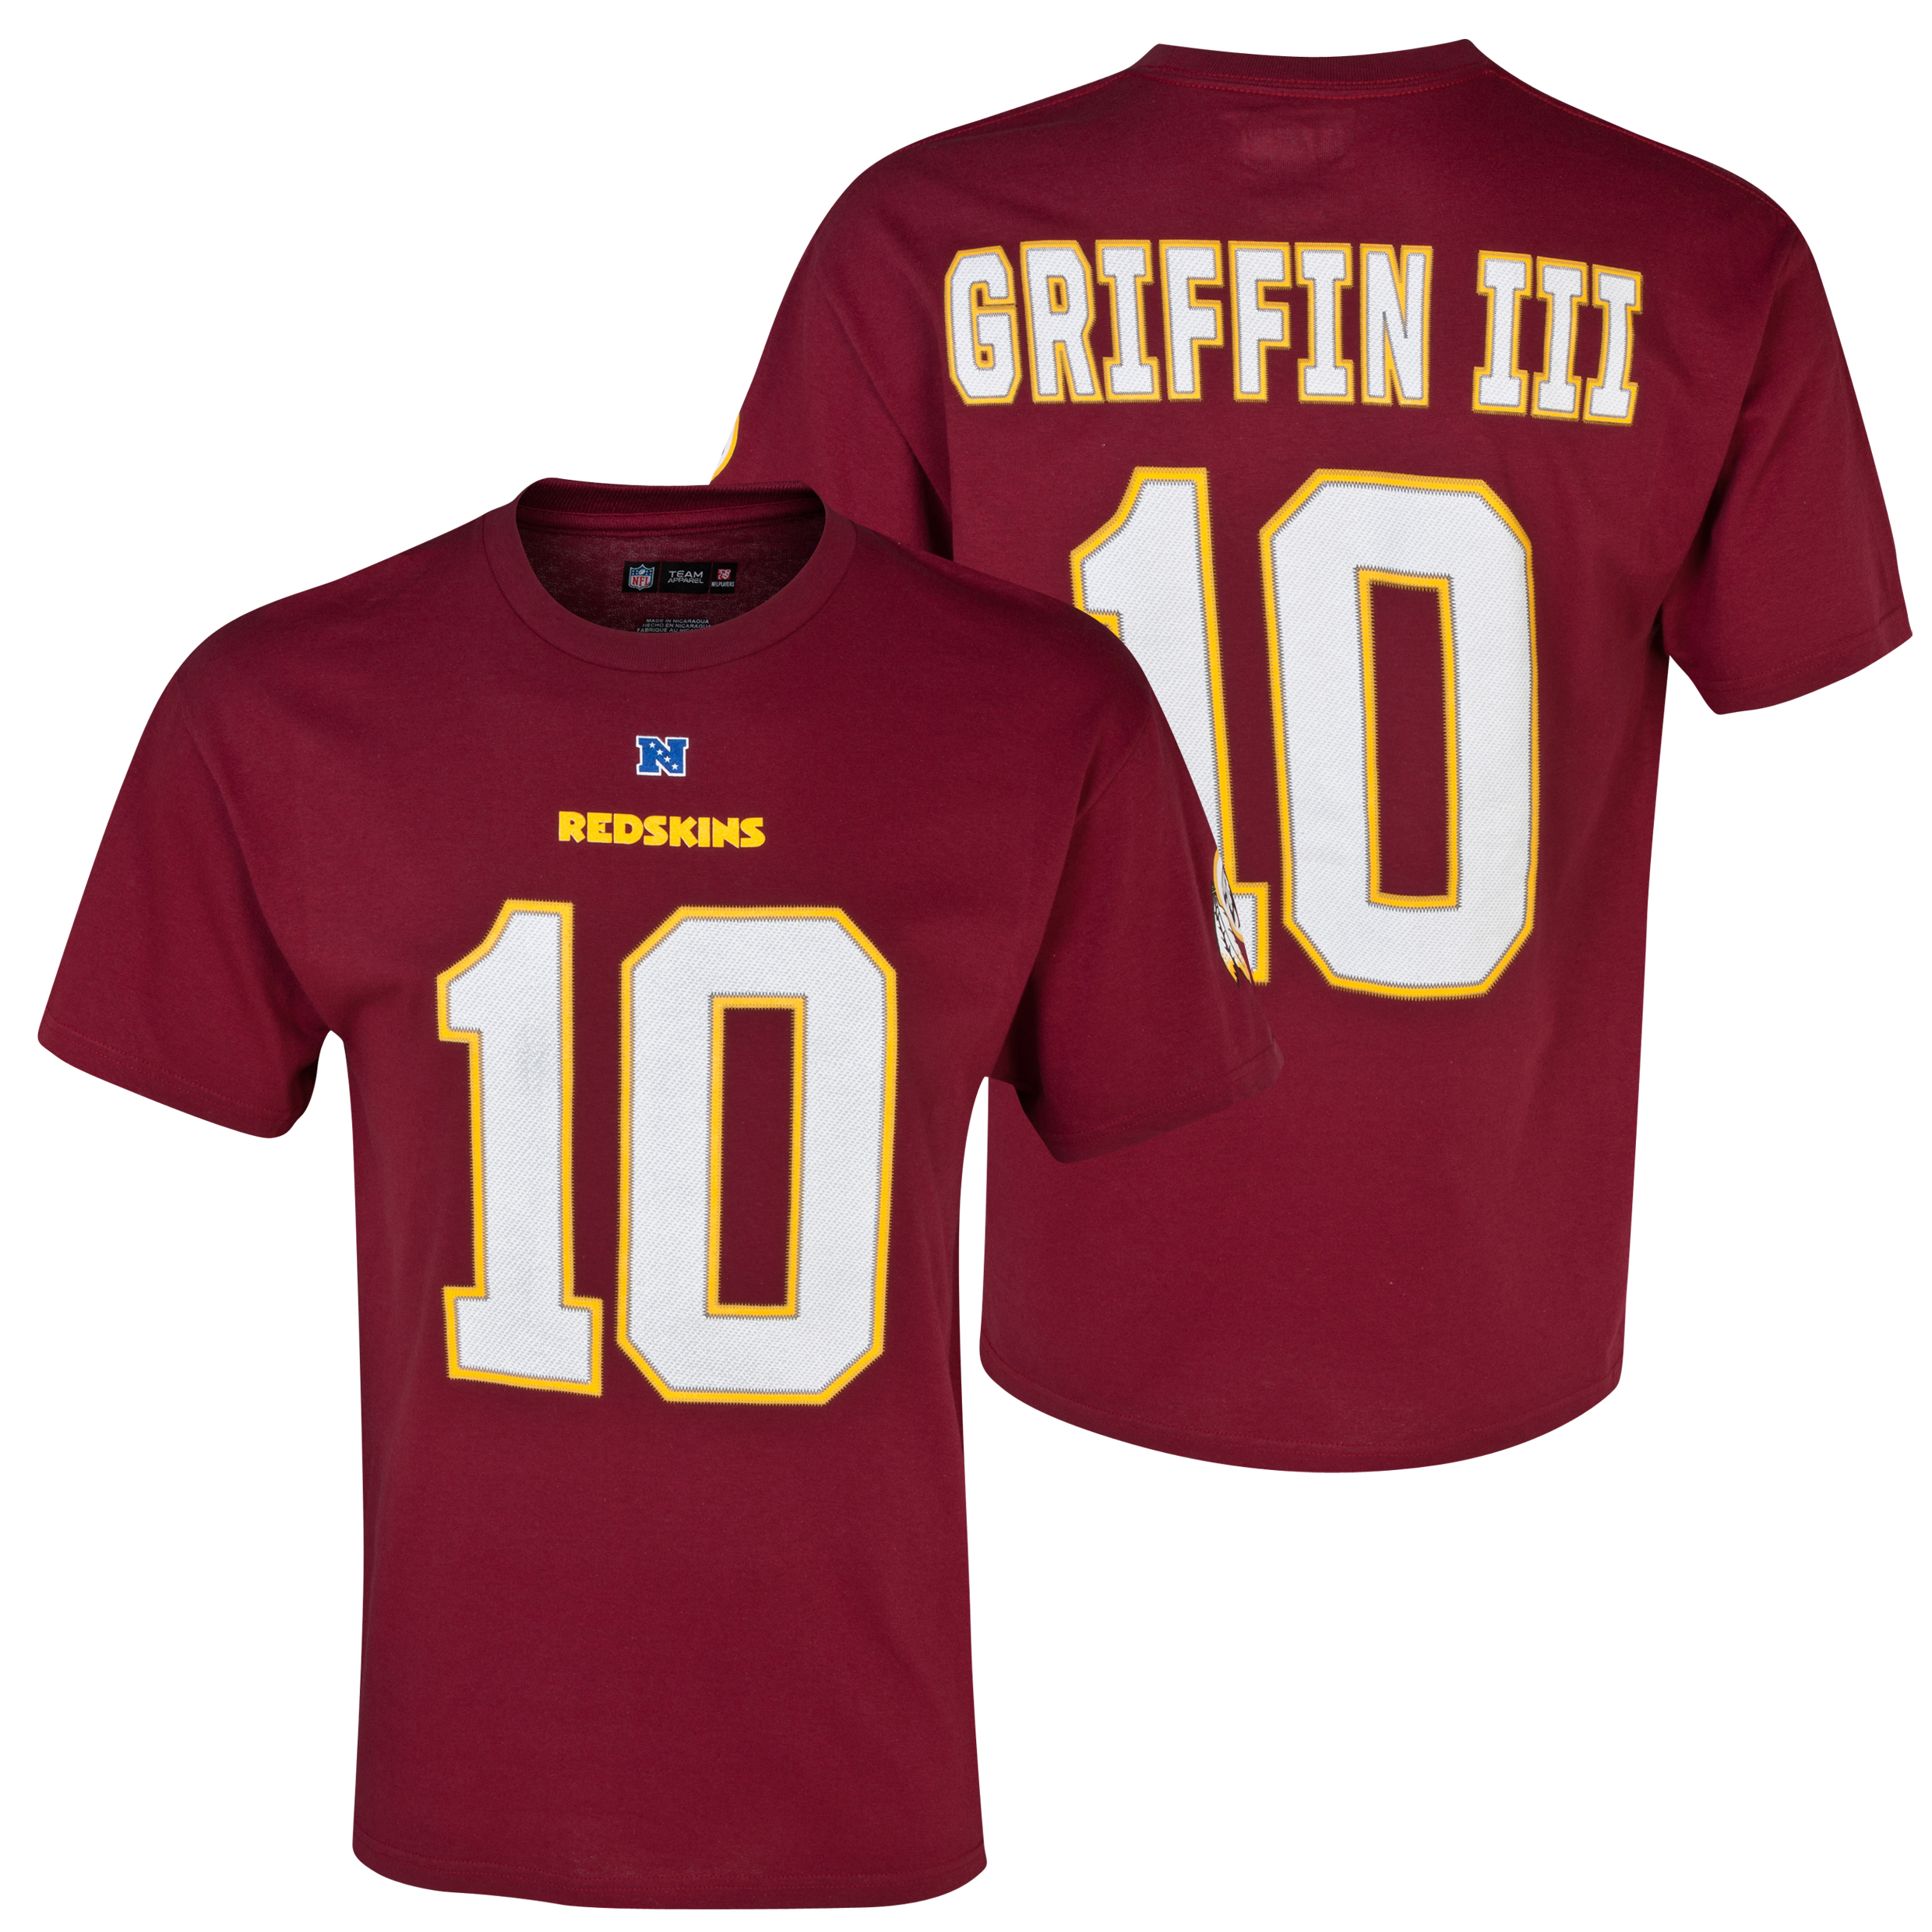 Washington Redskins The Eligible Receiver Griffin III T-Shirt